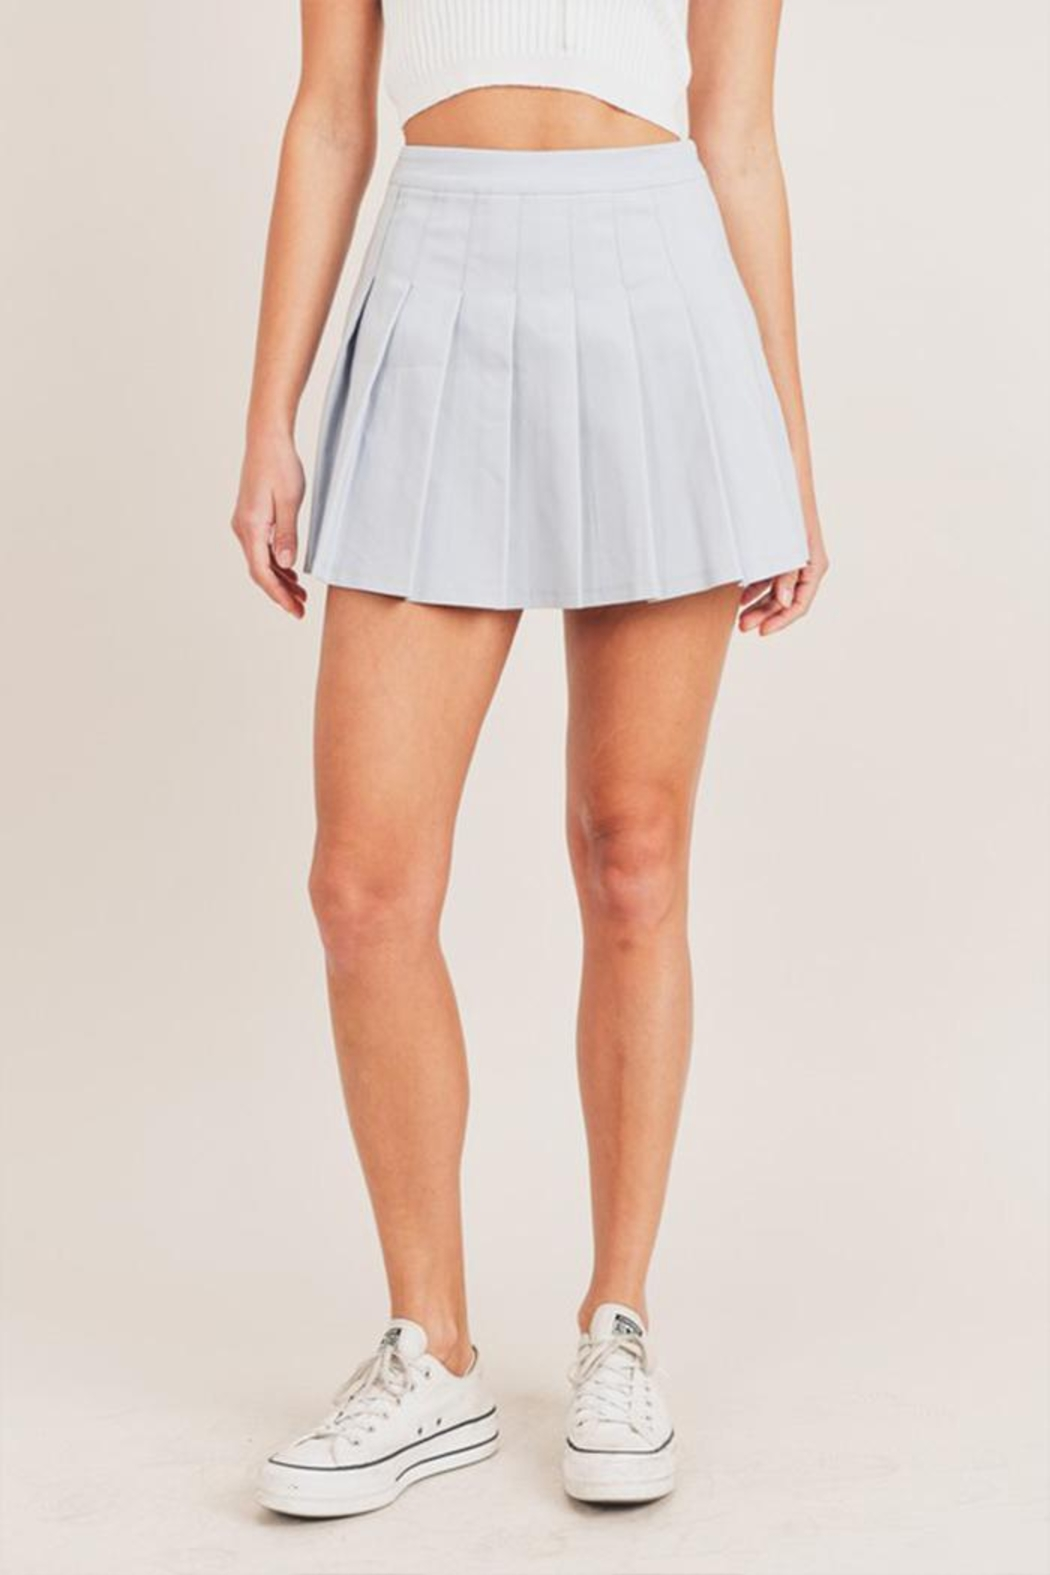 Mable Pleated Tennis Skirt - Main Image